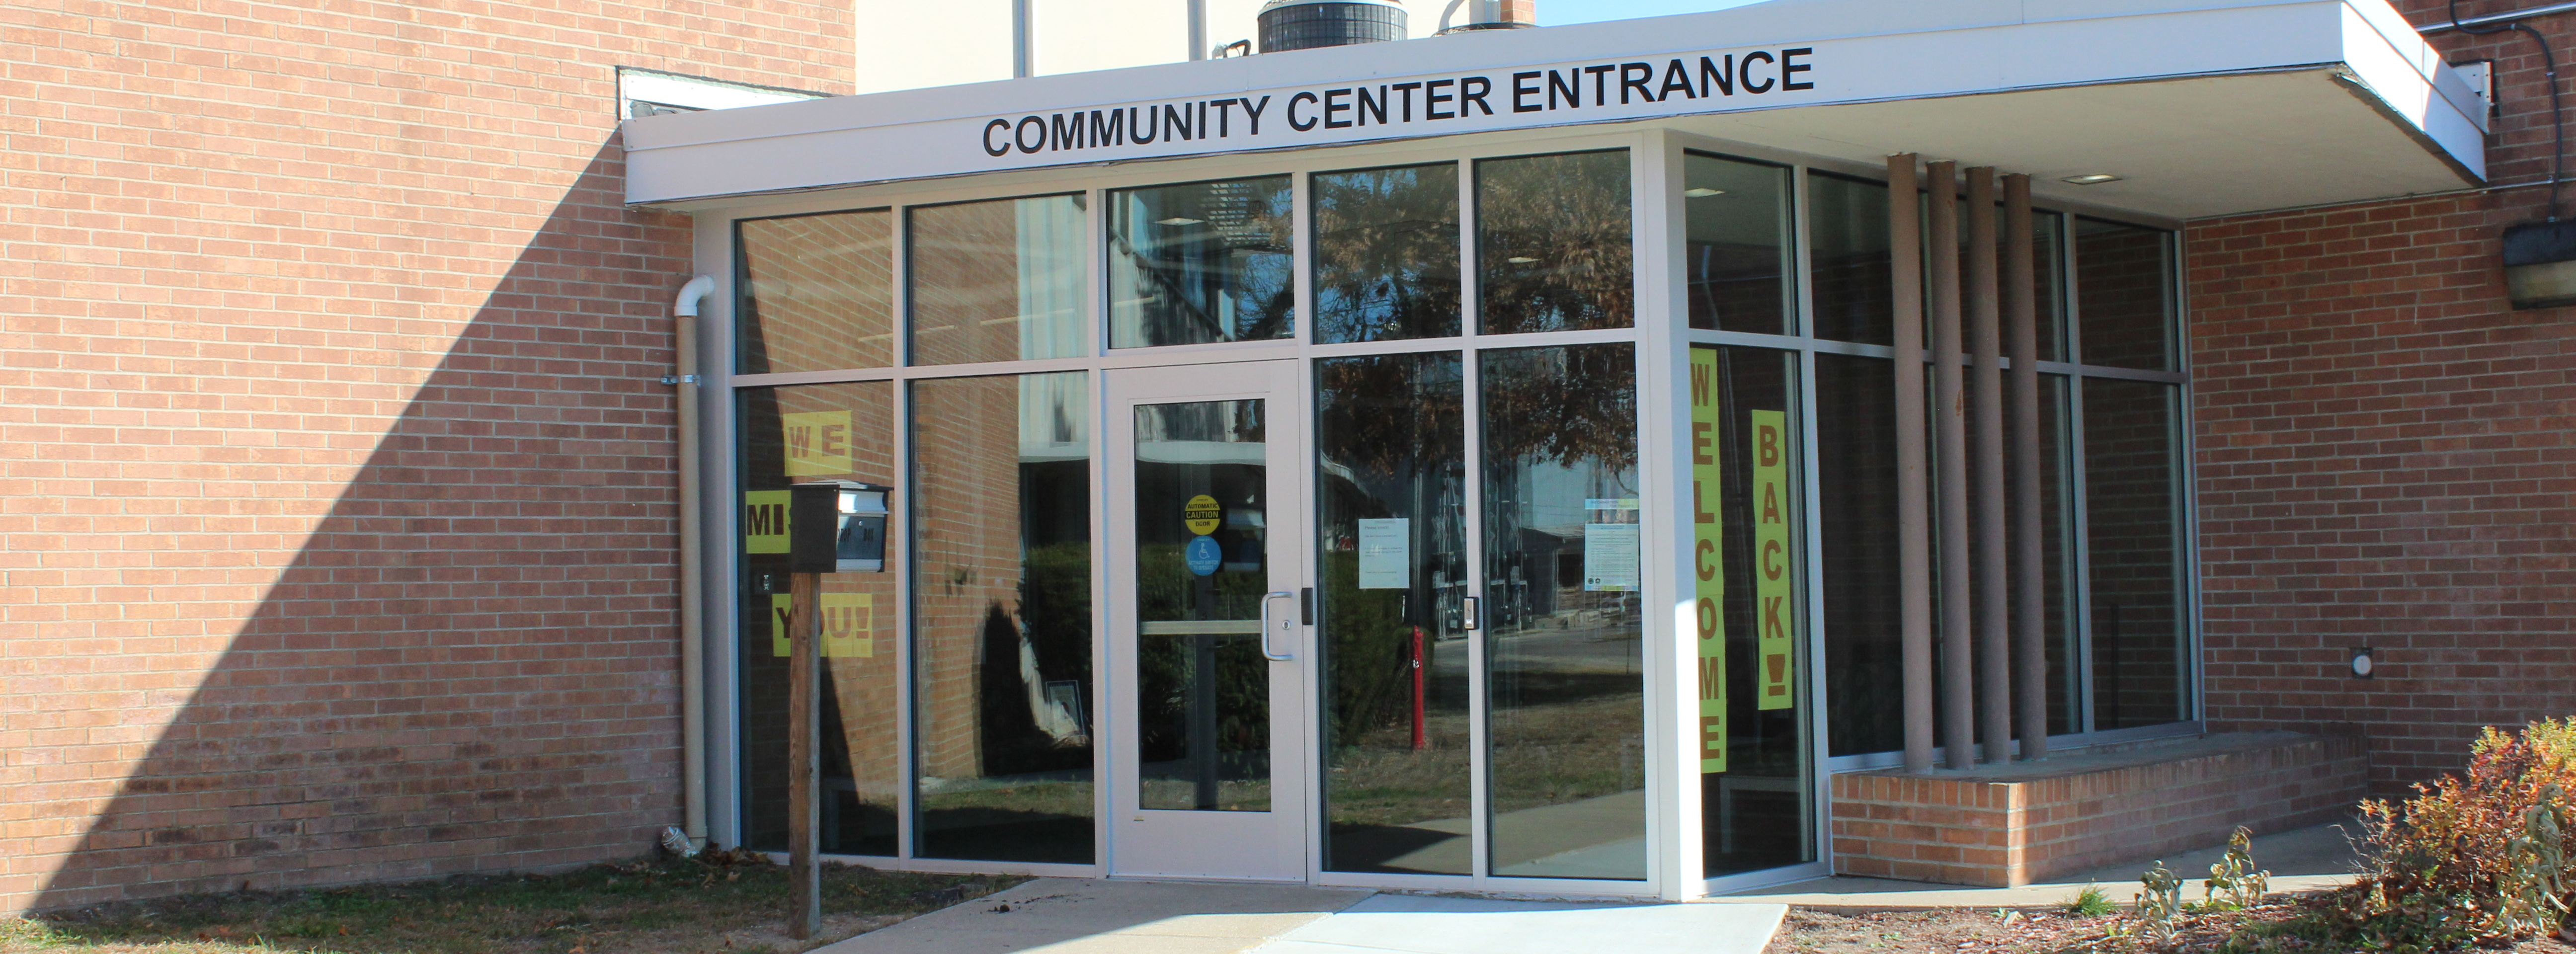 Front entrance to Community Center (front doors and glass windows)